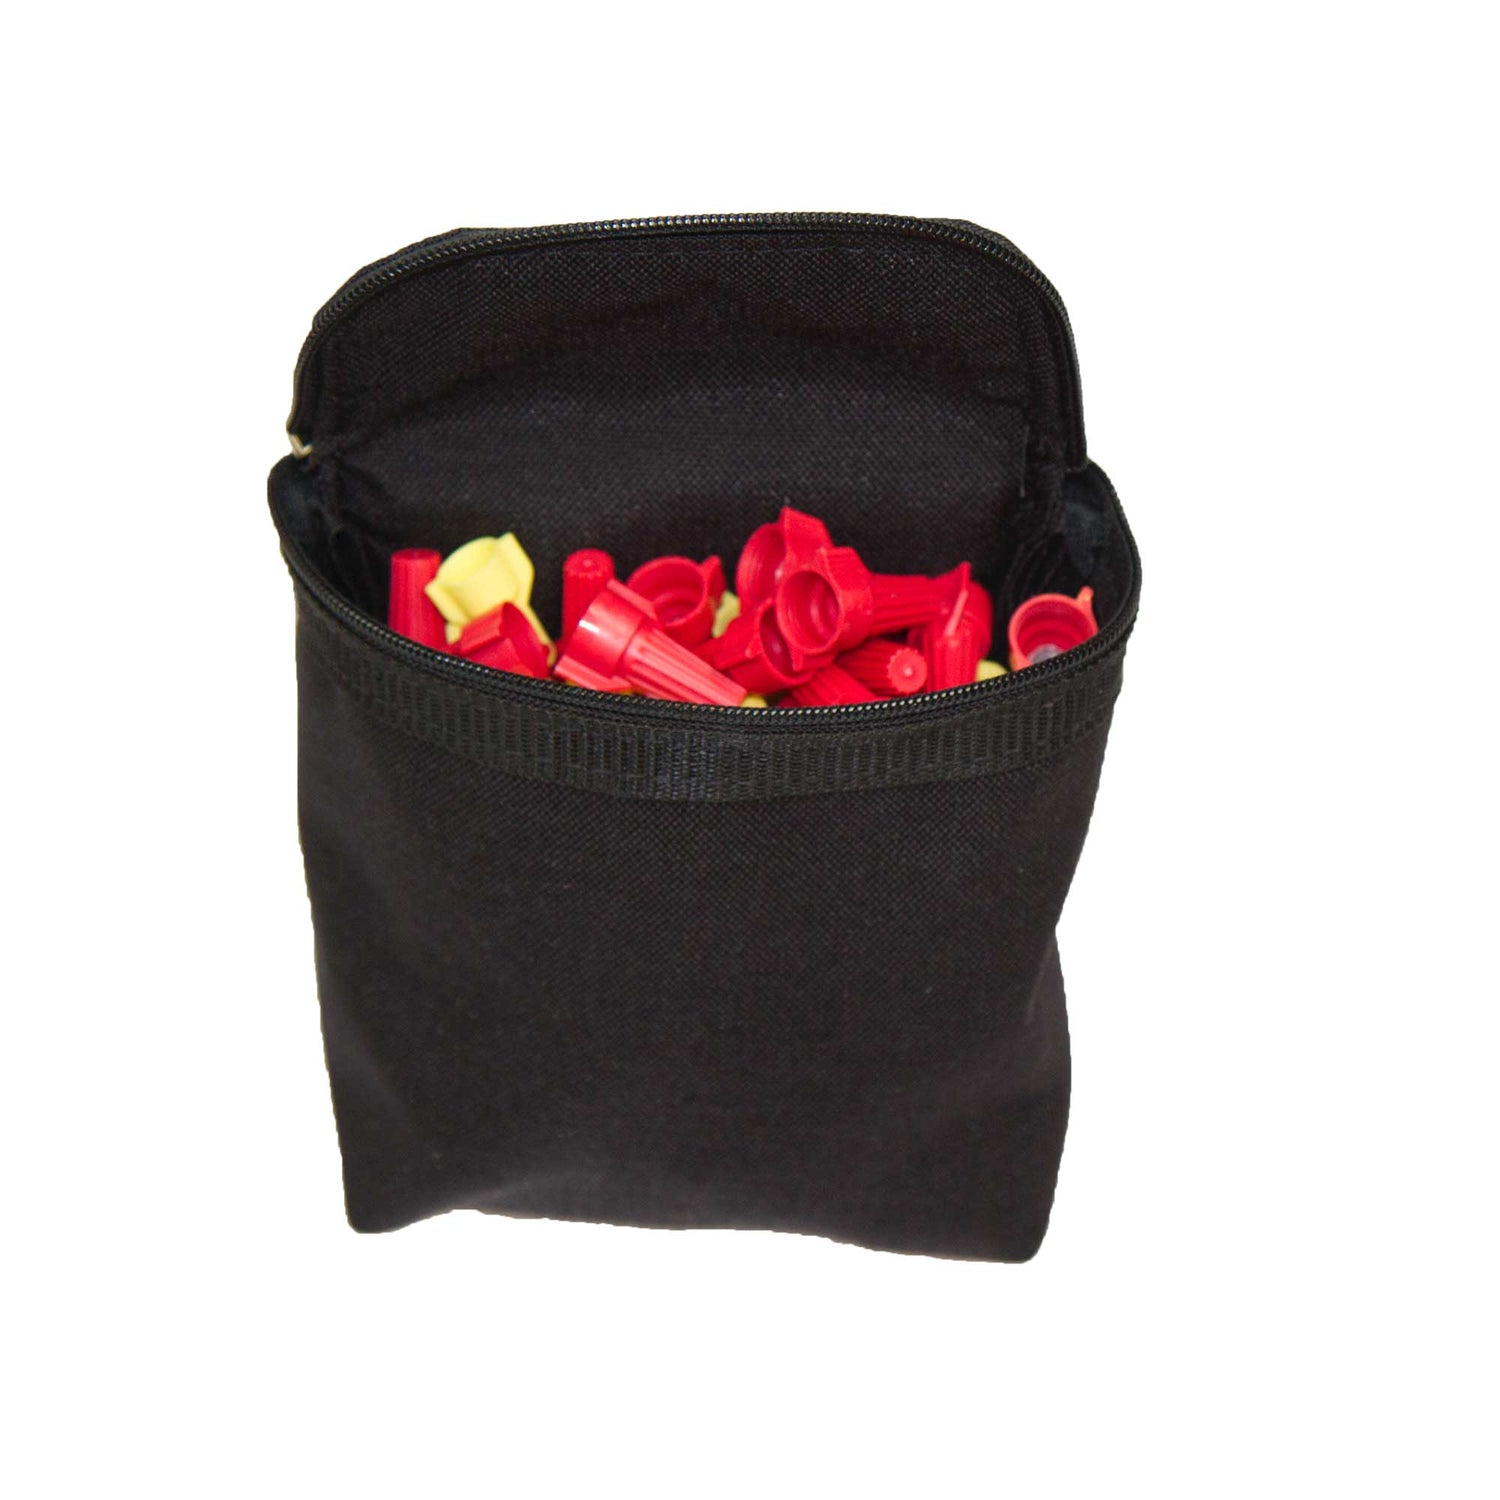 Zippered Connect-A-Pouch